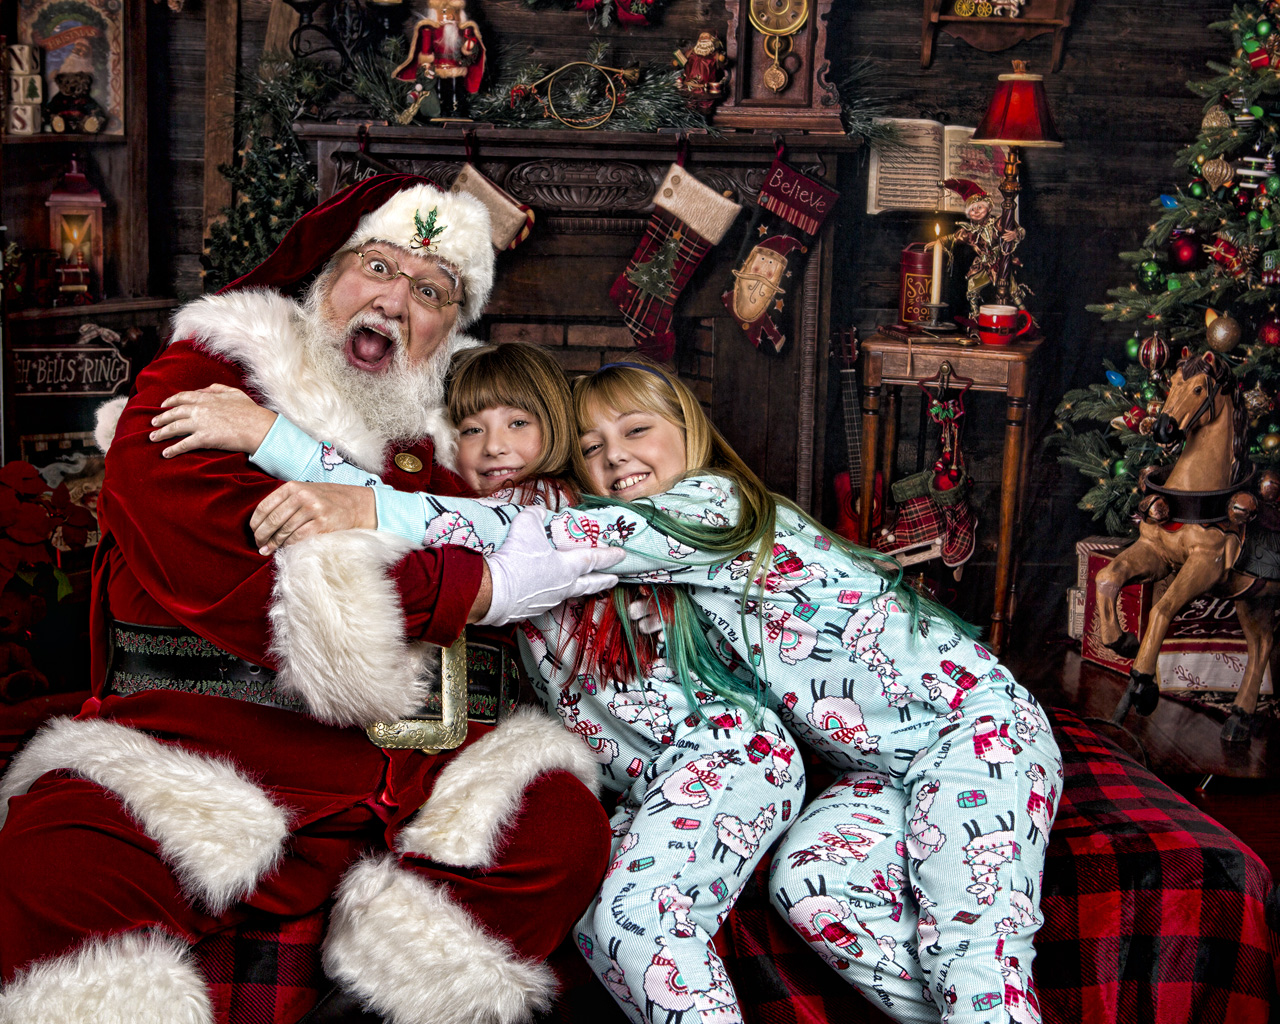 Santa having a great time laughing and posing with two girls in the Santa Experience Studio